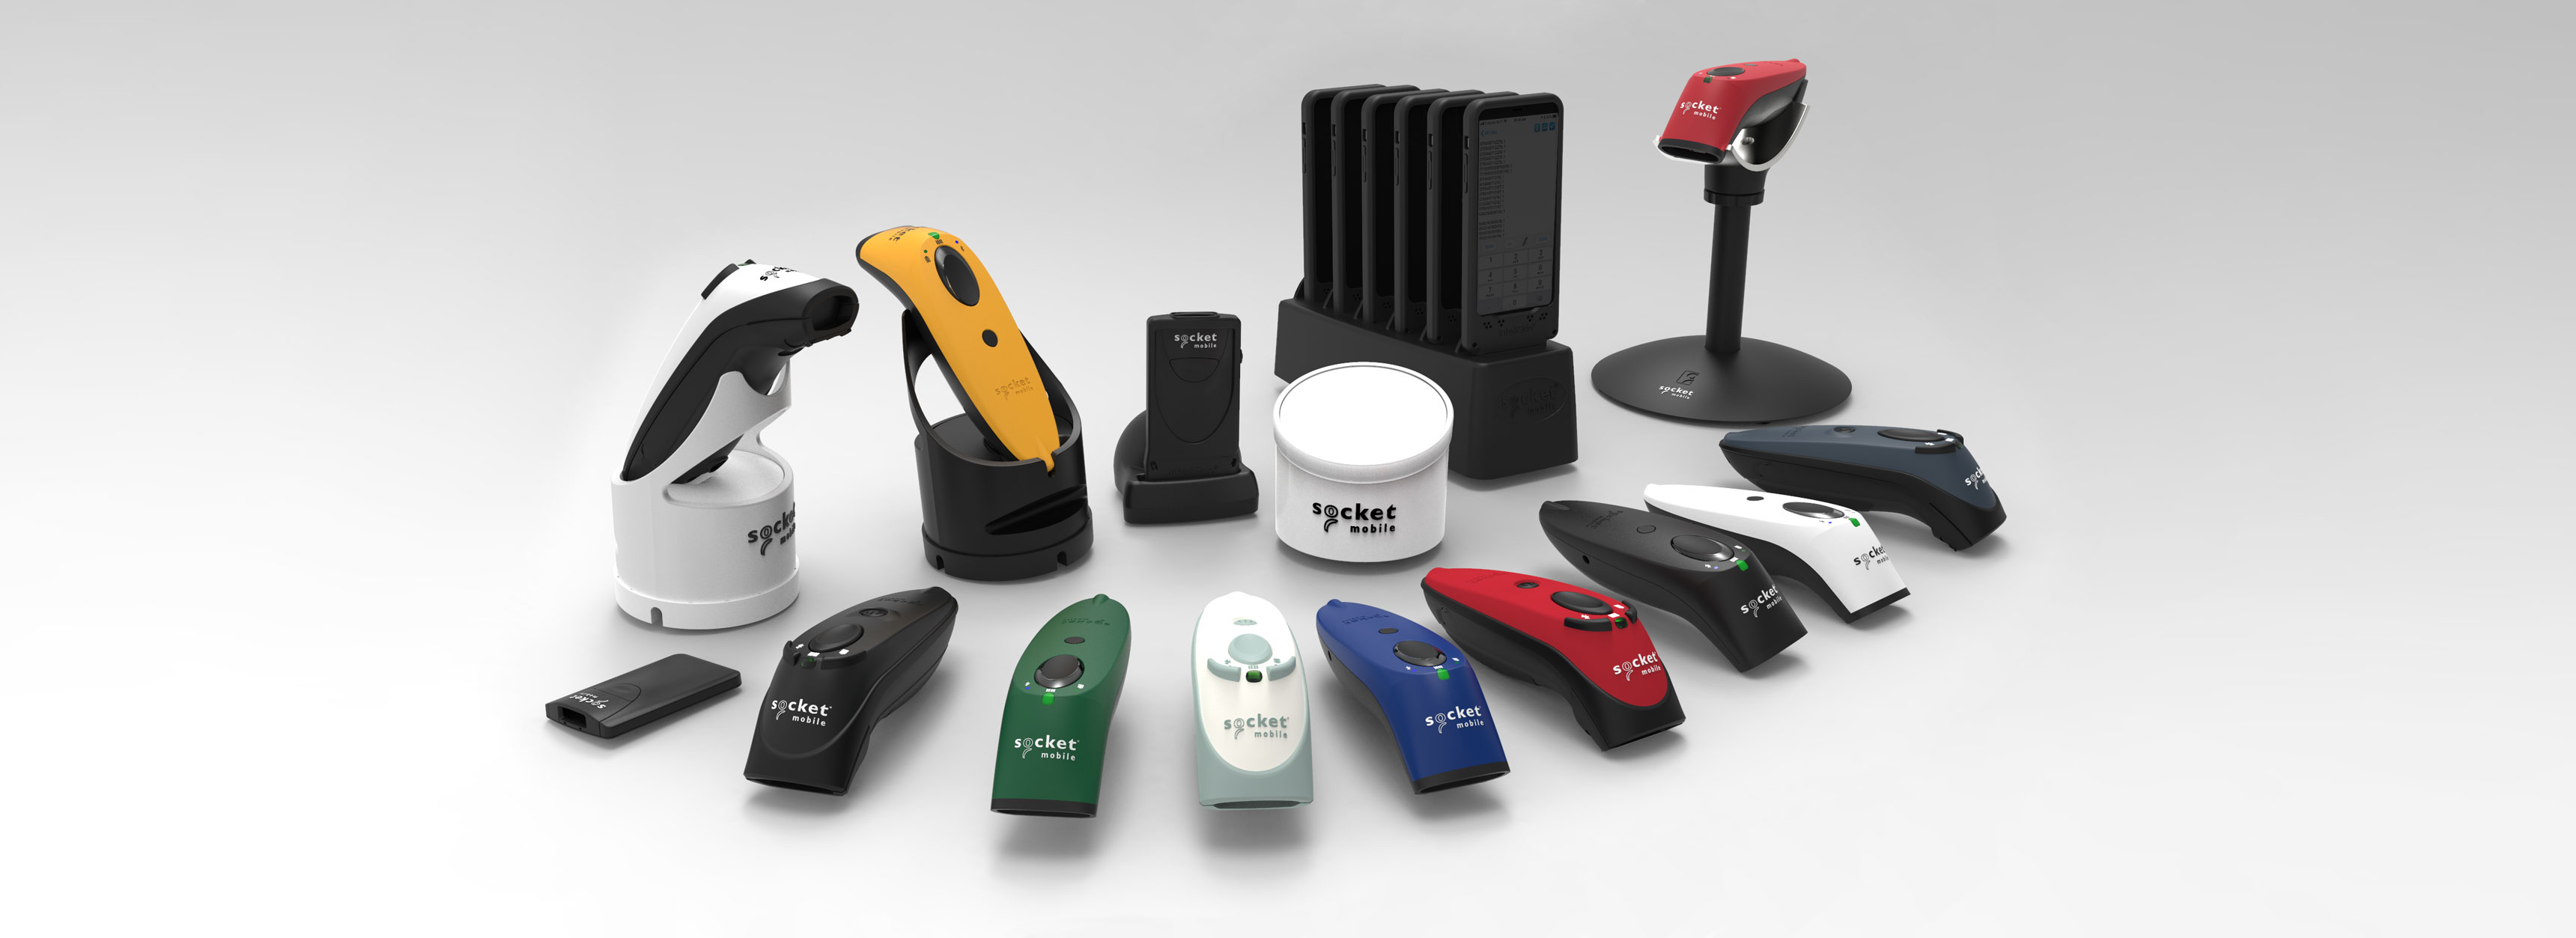 All Socket Mobile Products